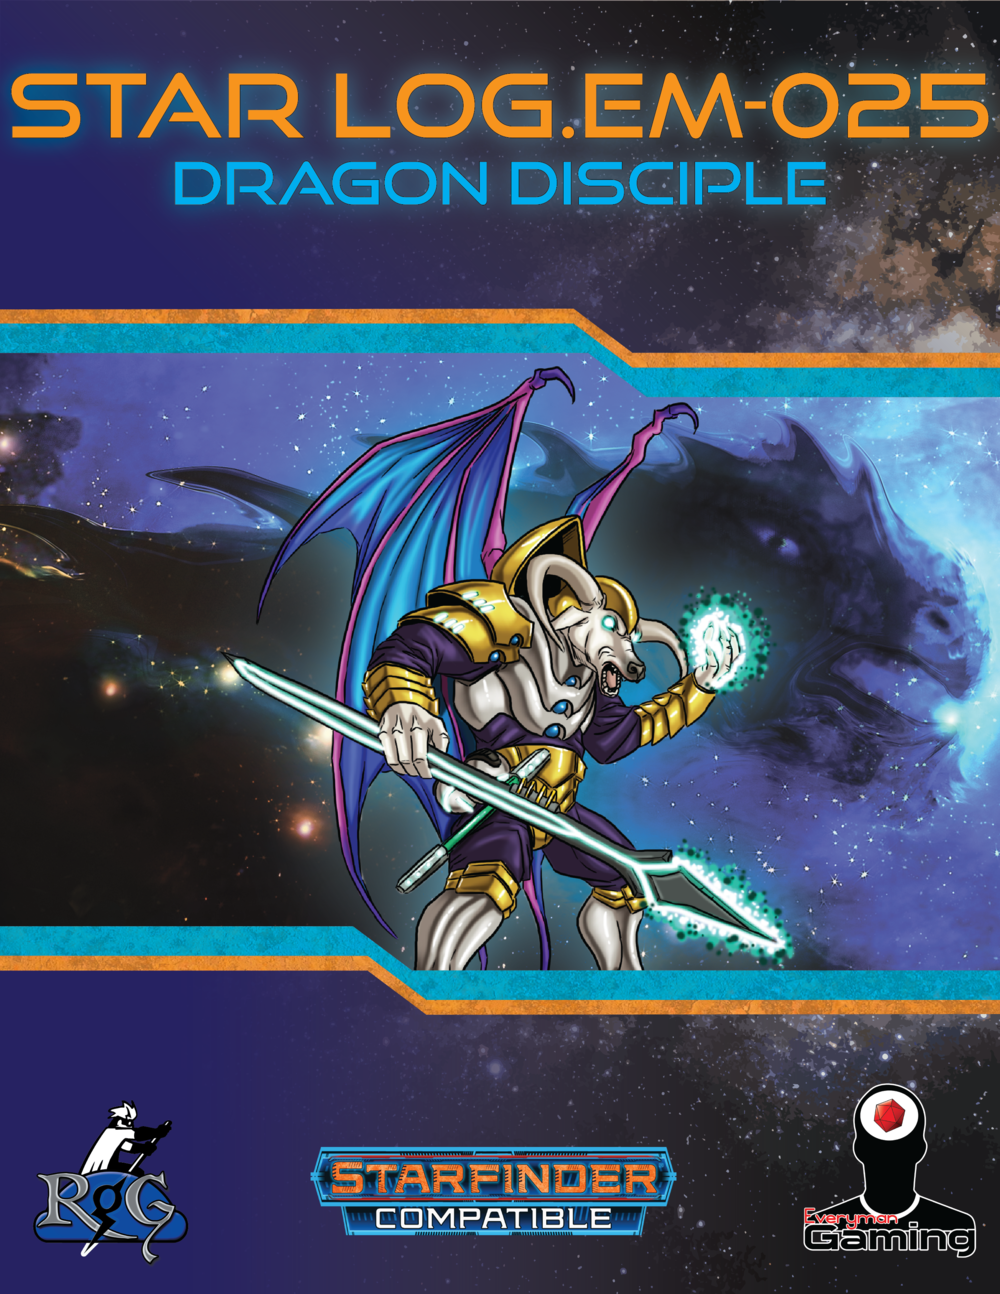 SF025 Dragon Disciple.png